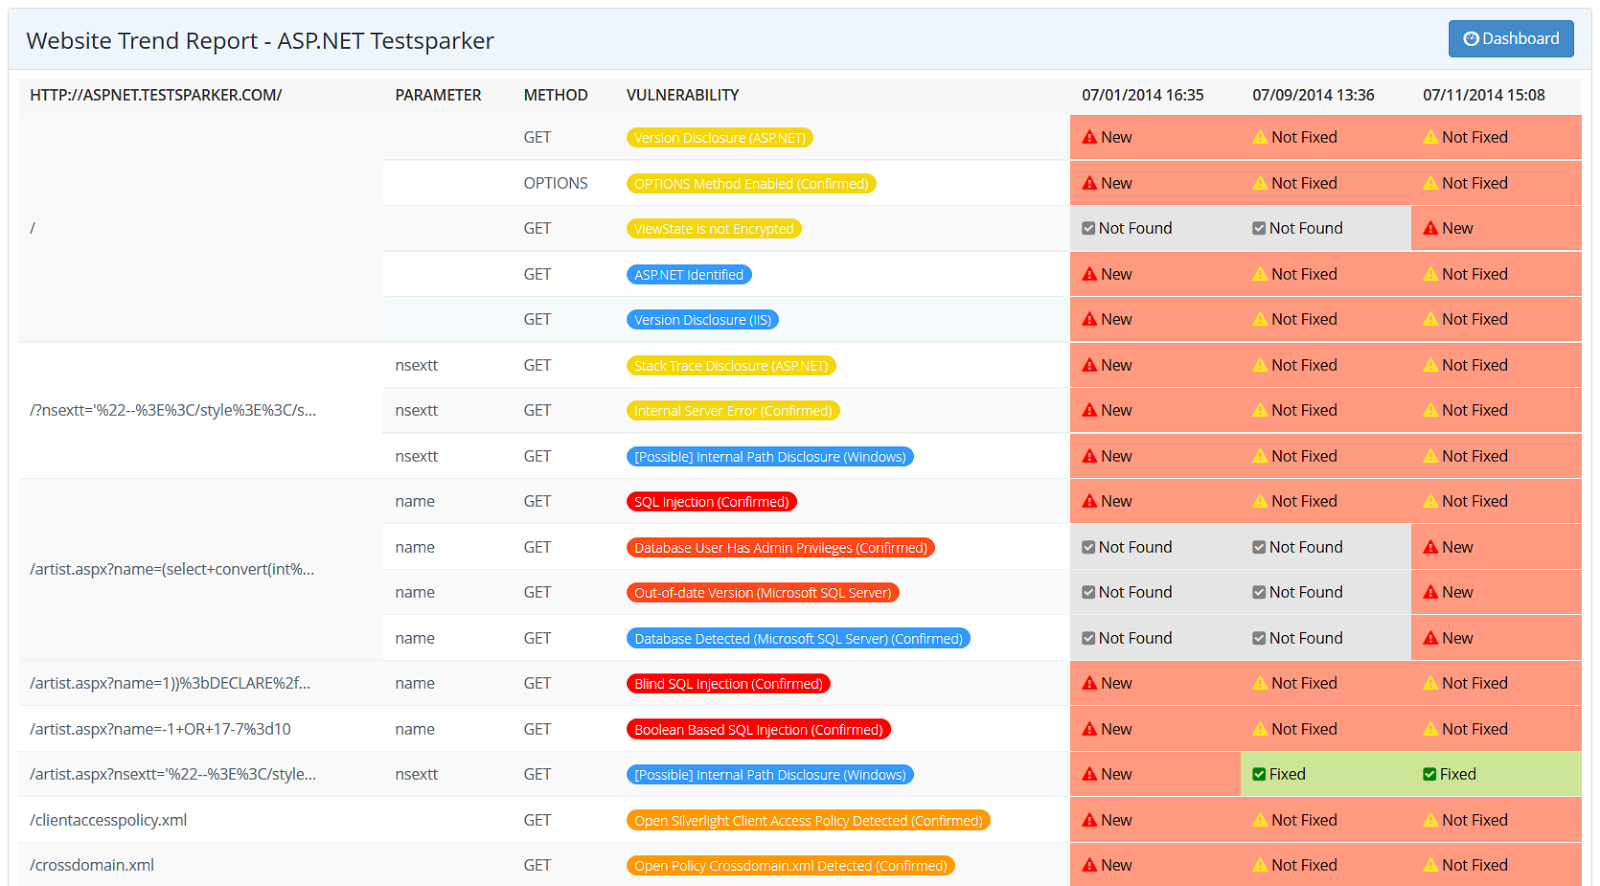 Netsparker Software - The trend matrix report provides information on when a vulnerability was identified the first time, when it was fixed, or when it was reintroduced on the website